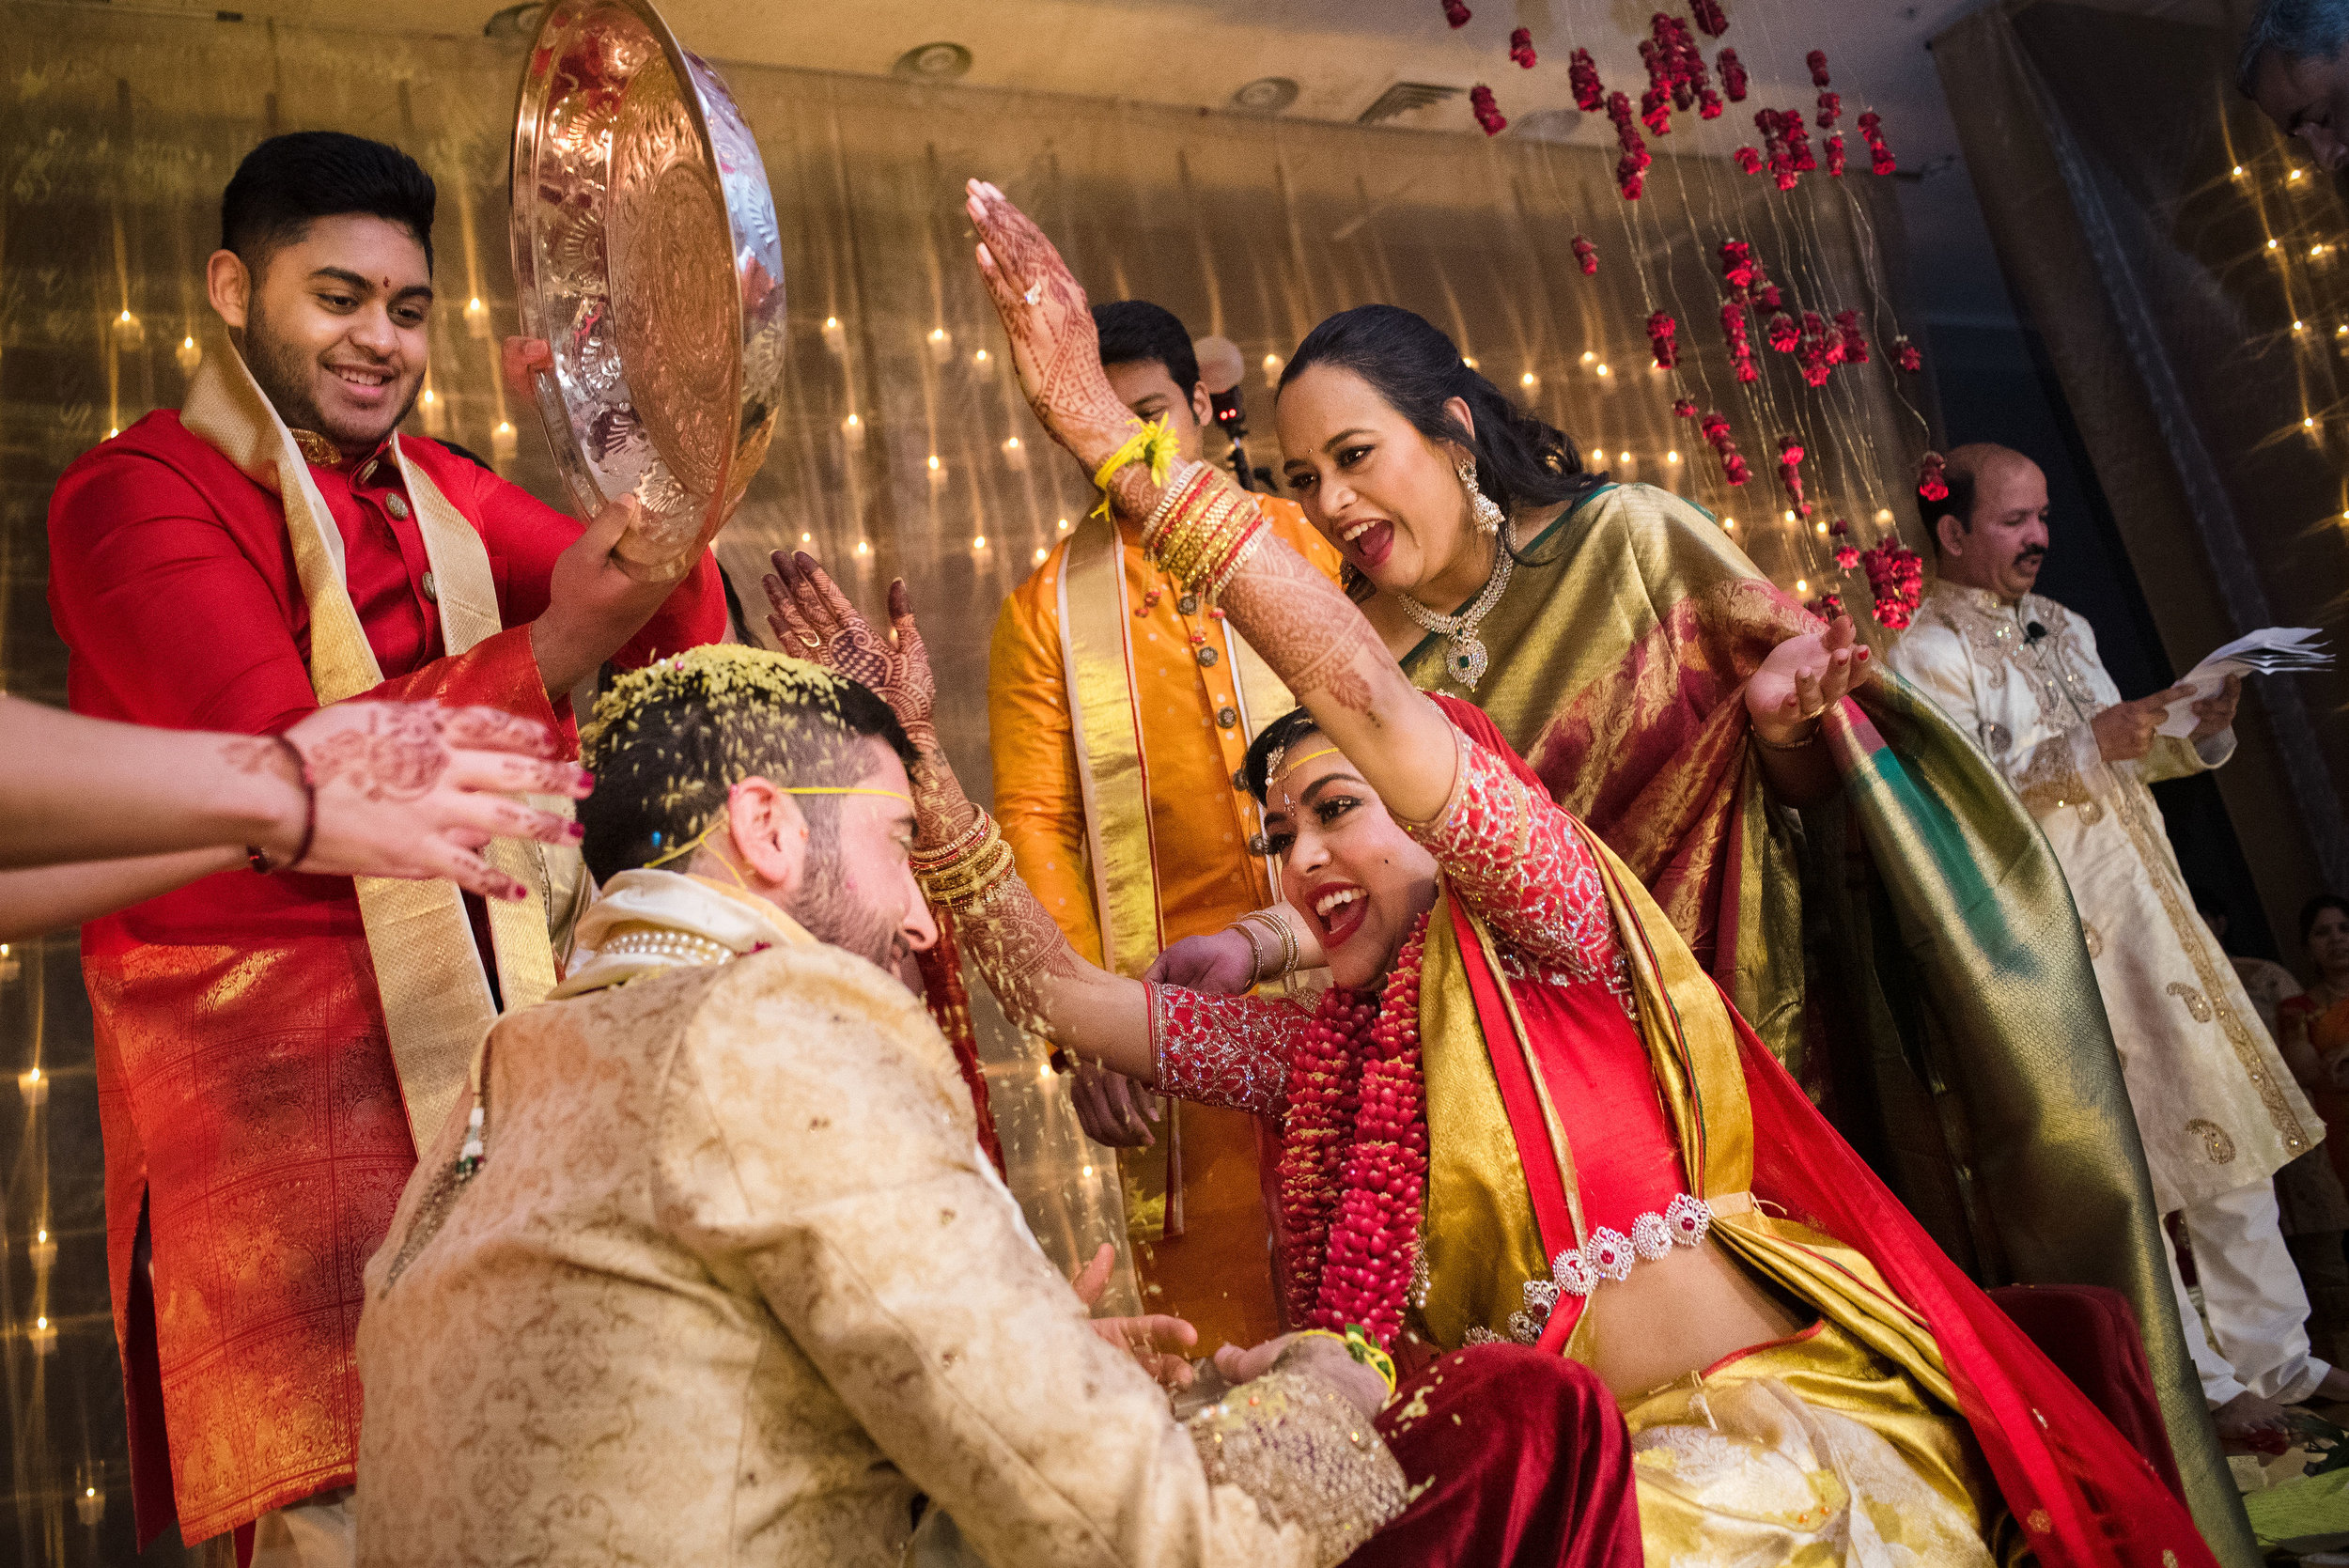 INDIAN WEDDING CEREMONY GROOM AND BRIDE.JPG